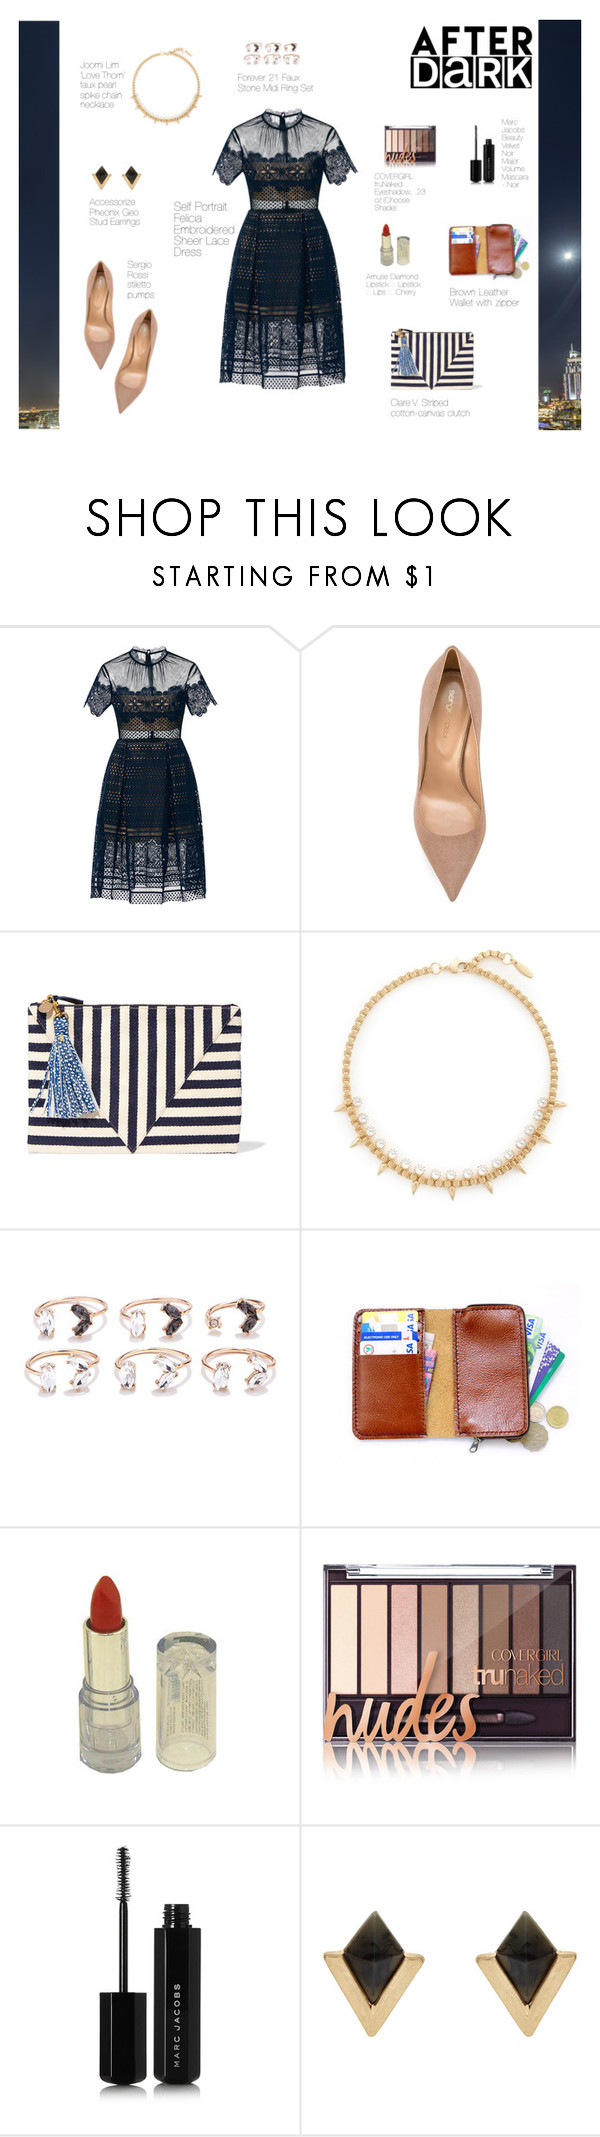 """""""Sin título #281"""" by yuruanimm ❤ liked on Polyvore featuring self-portrait, Sergio Rossi, Clare V., Joomi Lim, Forever 21, Marc Jacobs, Accessorize, modern and vintage"""